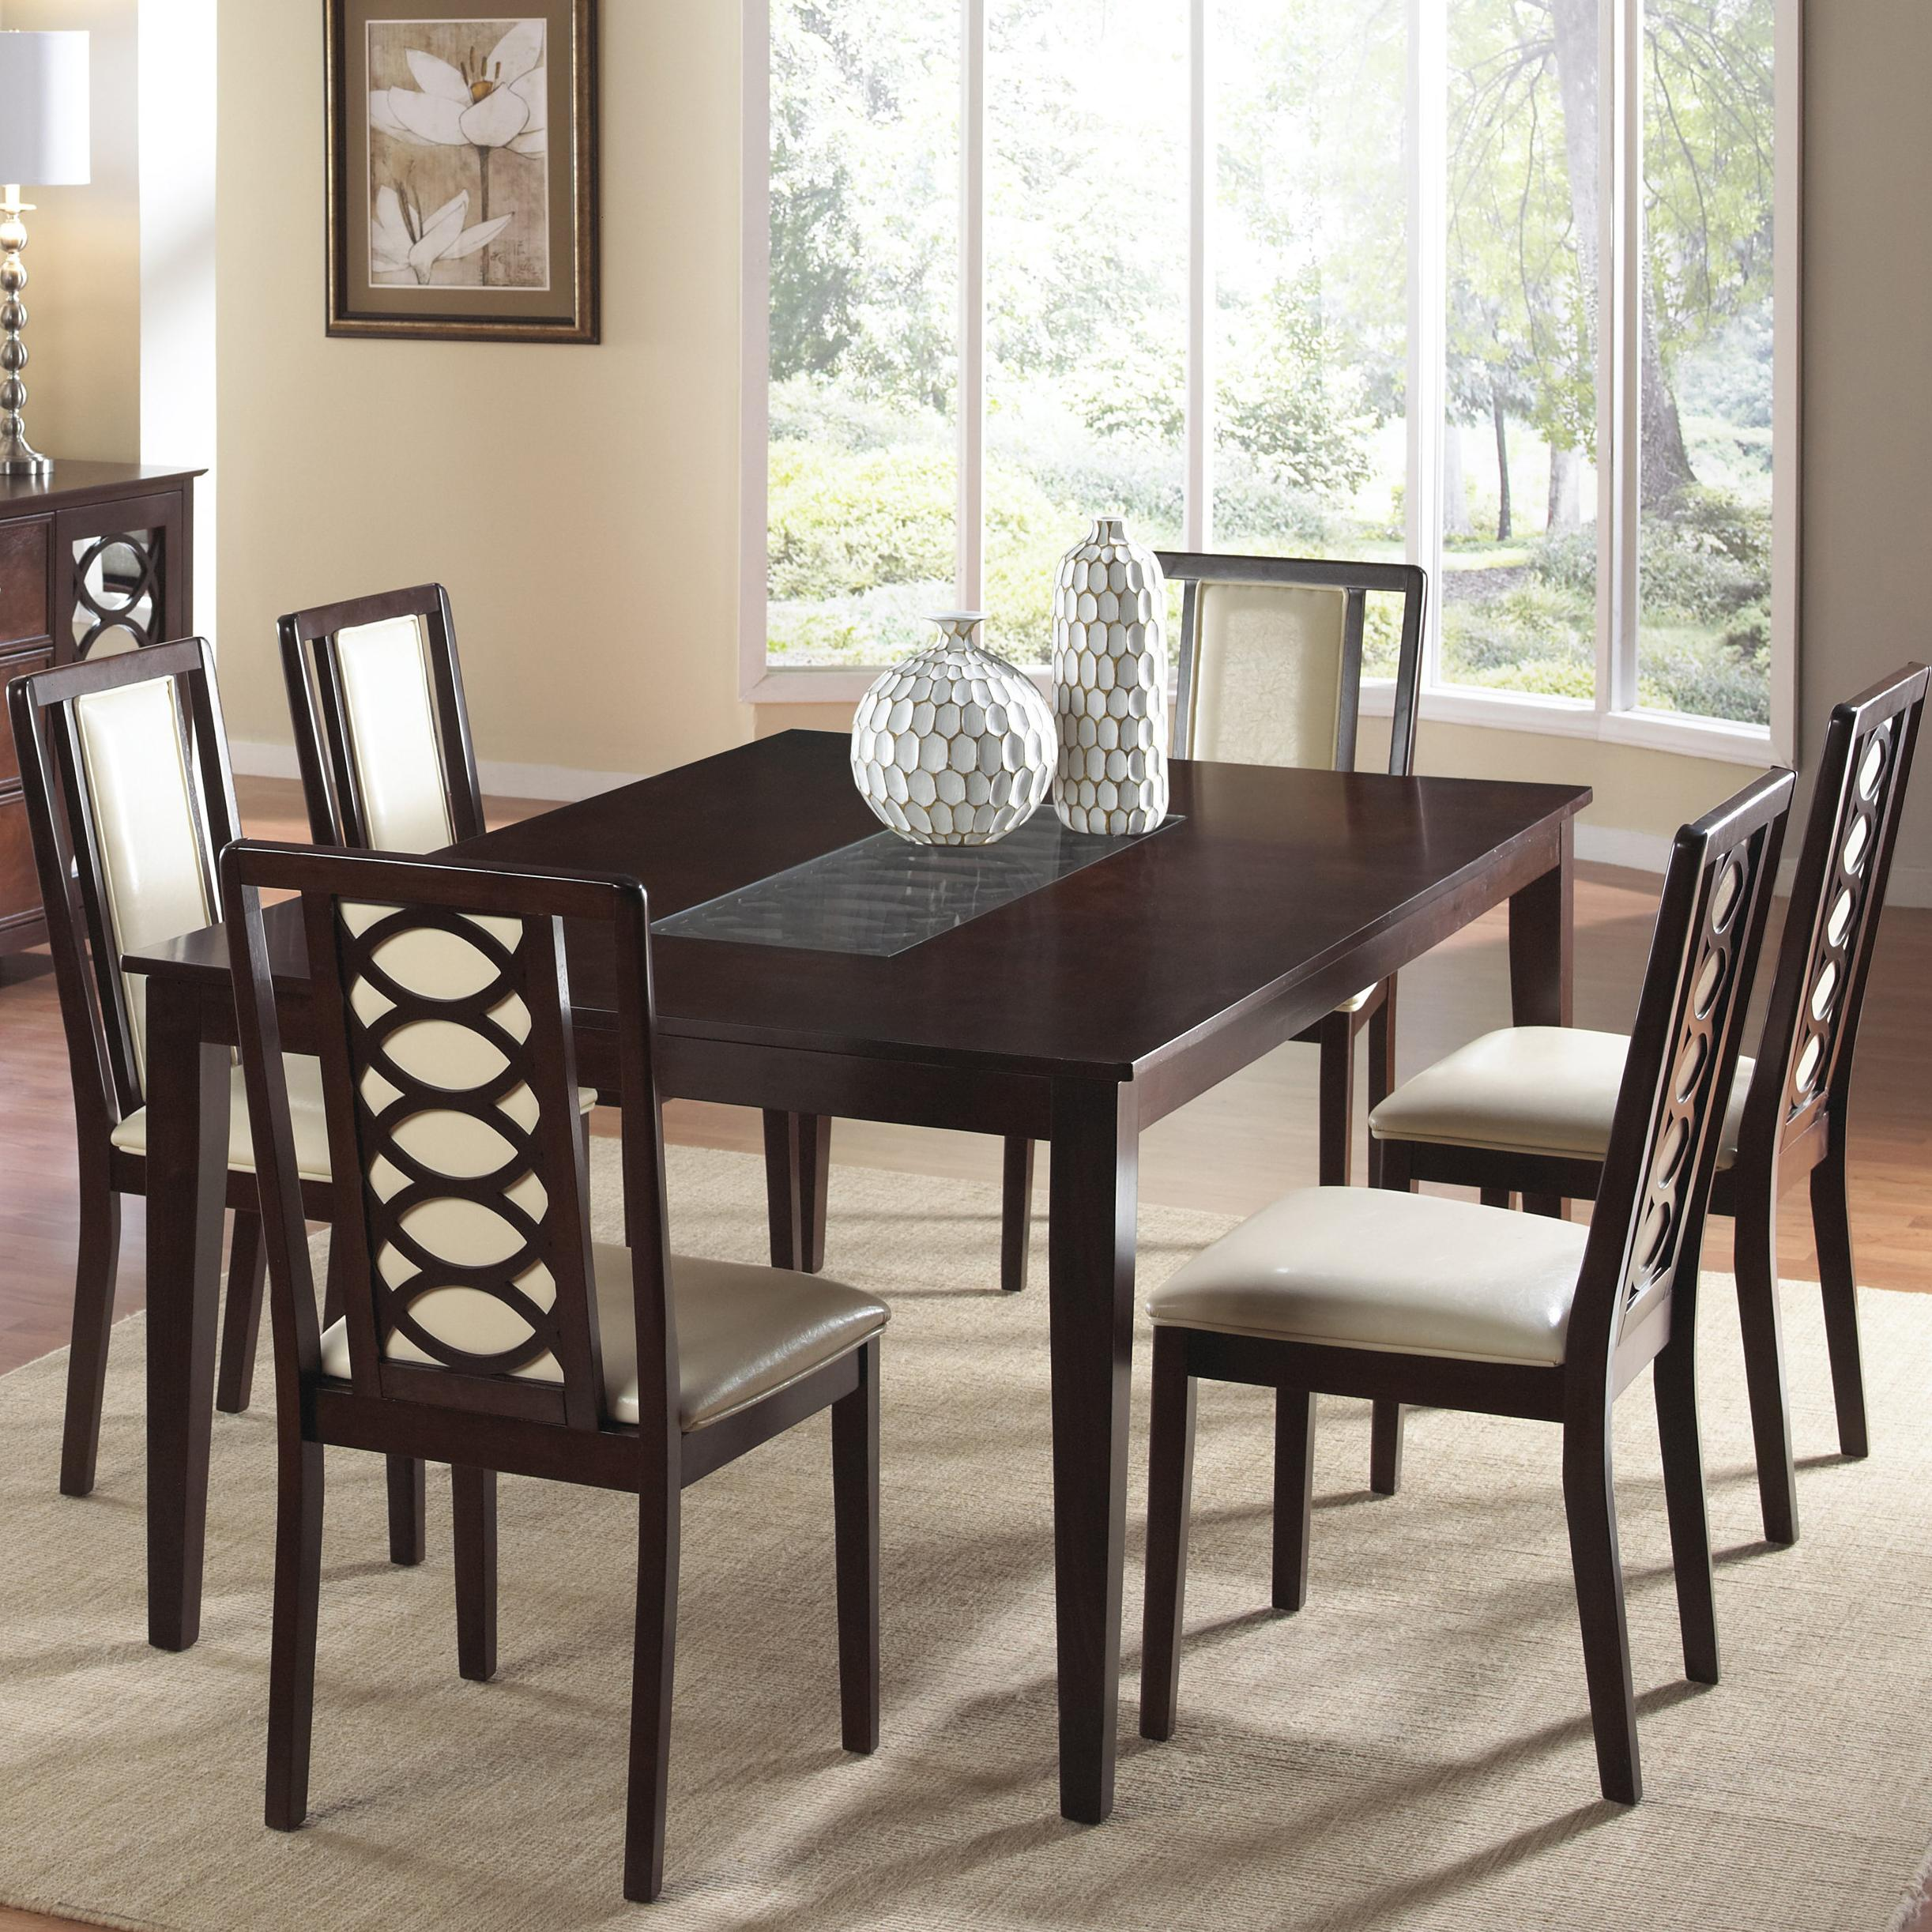 Exceptional 7 Piece Dining Table And Chair Set